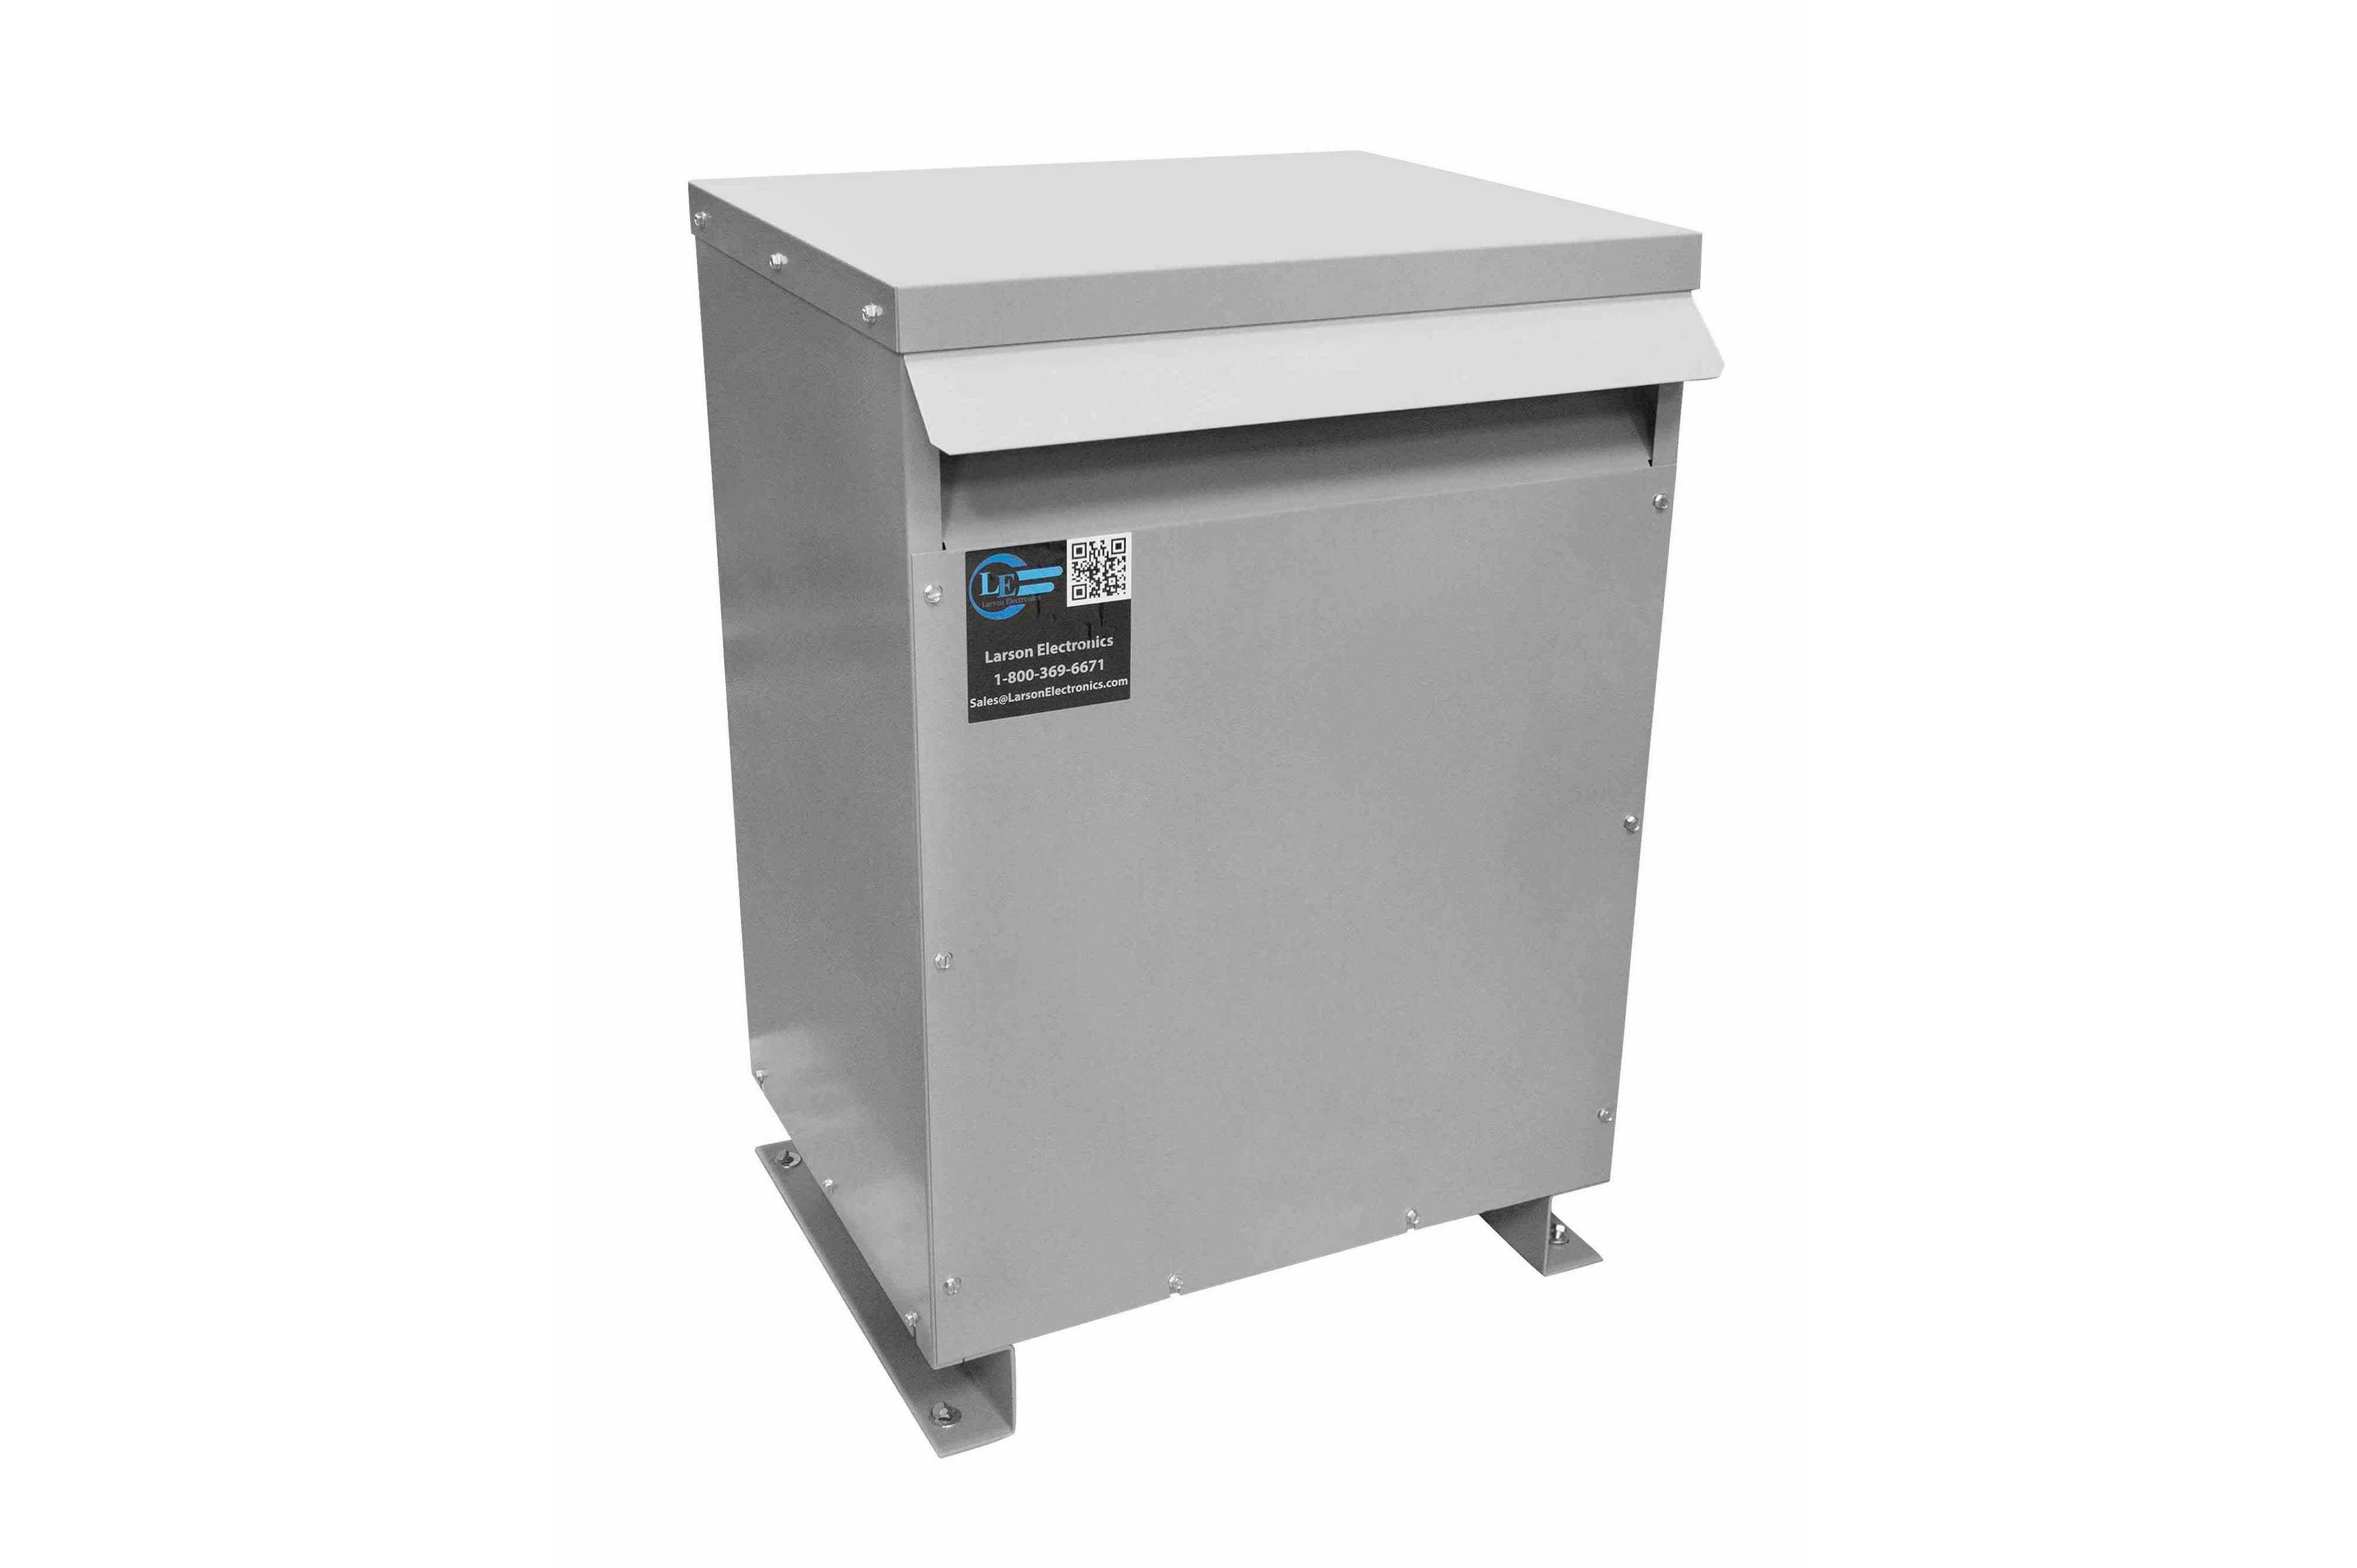 167 kVA 3PH DOE Transformer, 240V Delta Primary, 415Y/240 Wye-N Secondary, N3R, Ventilated, 60 Hz